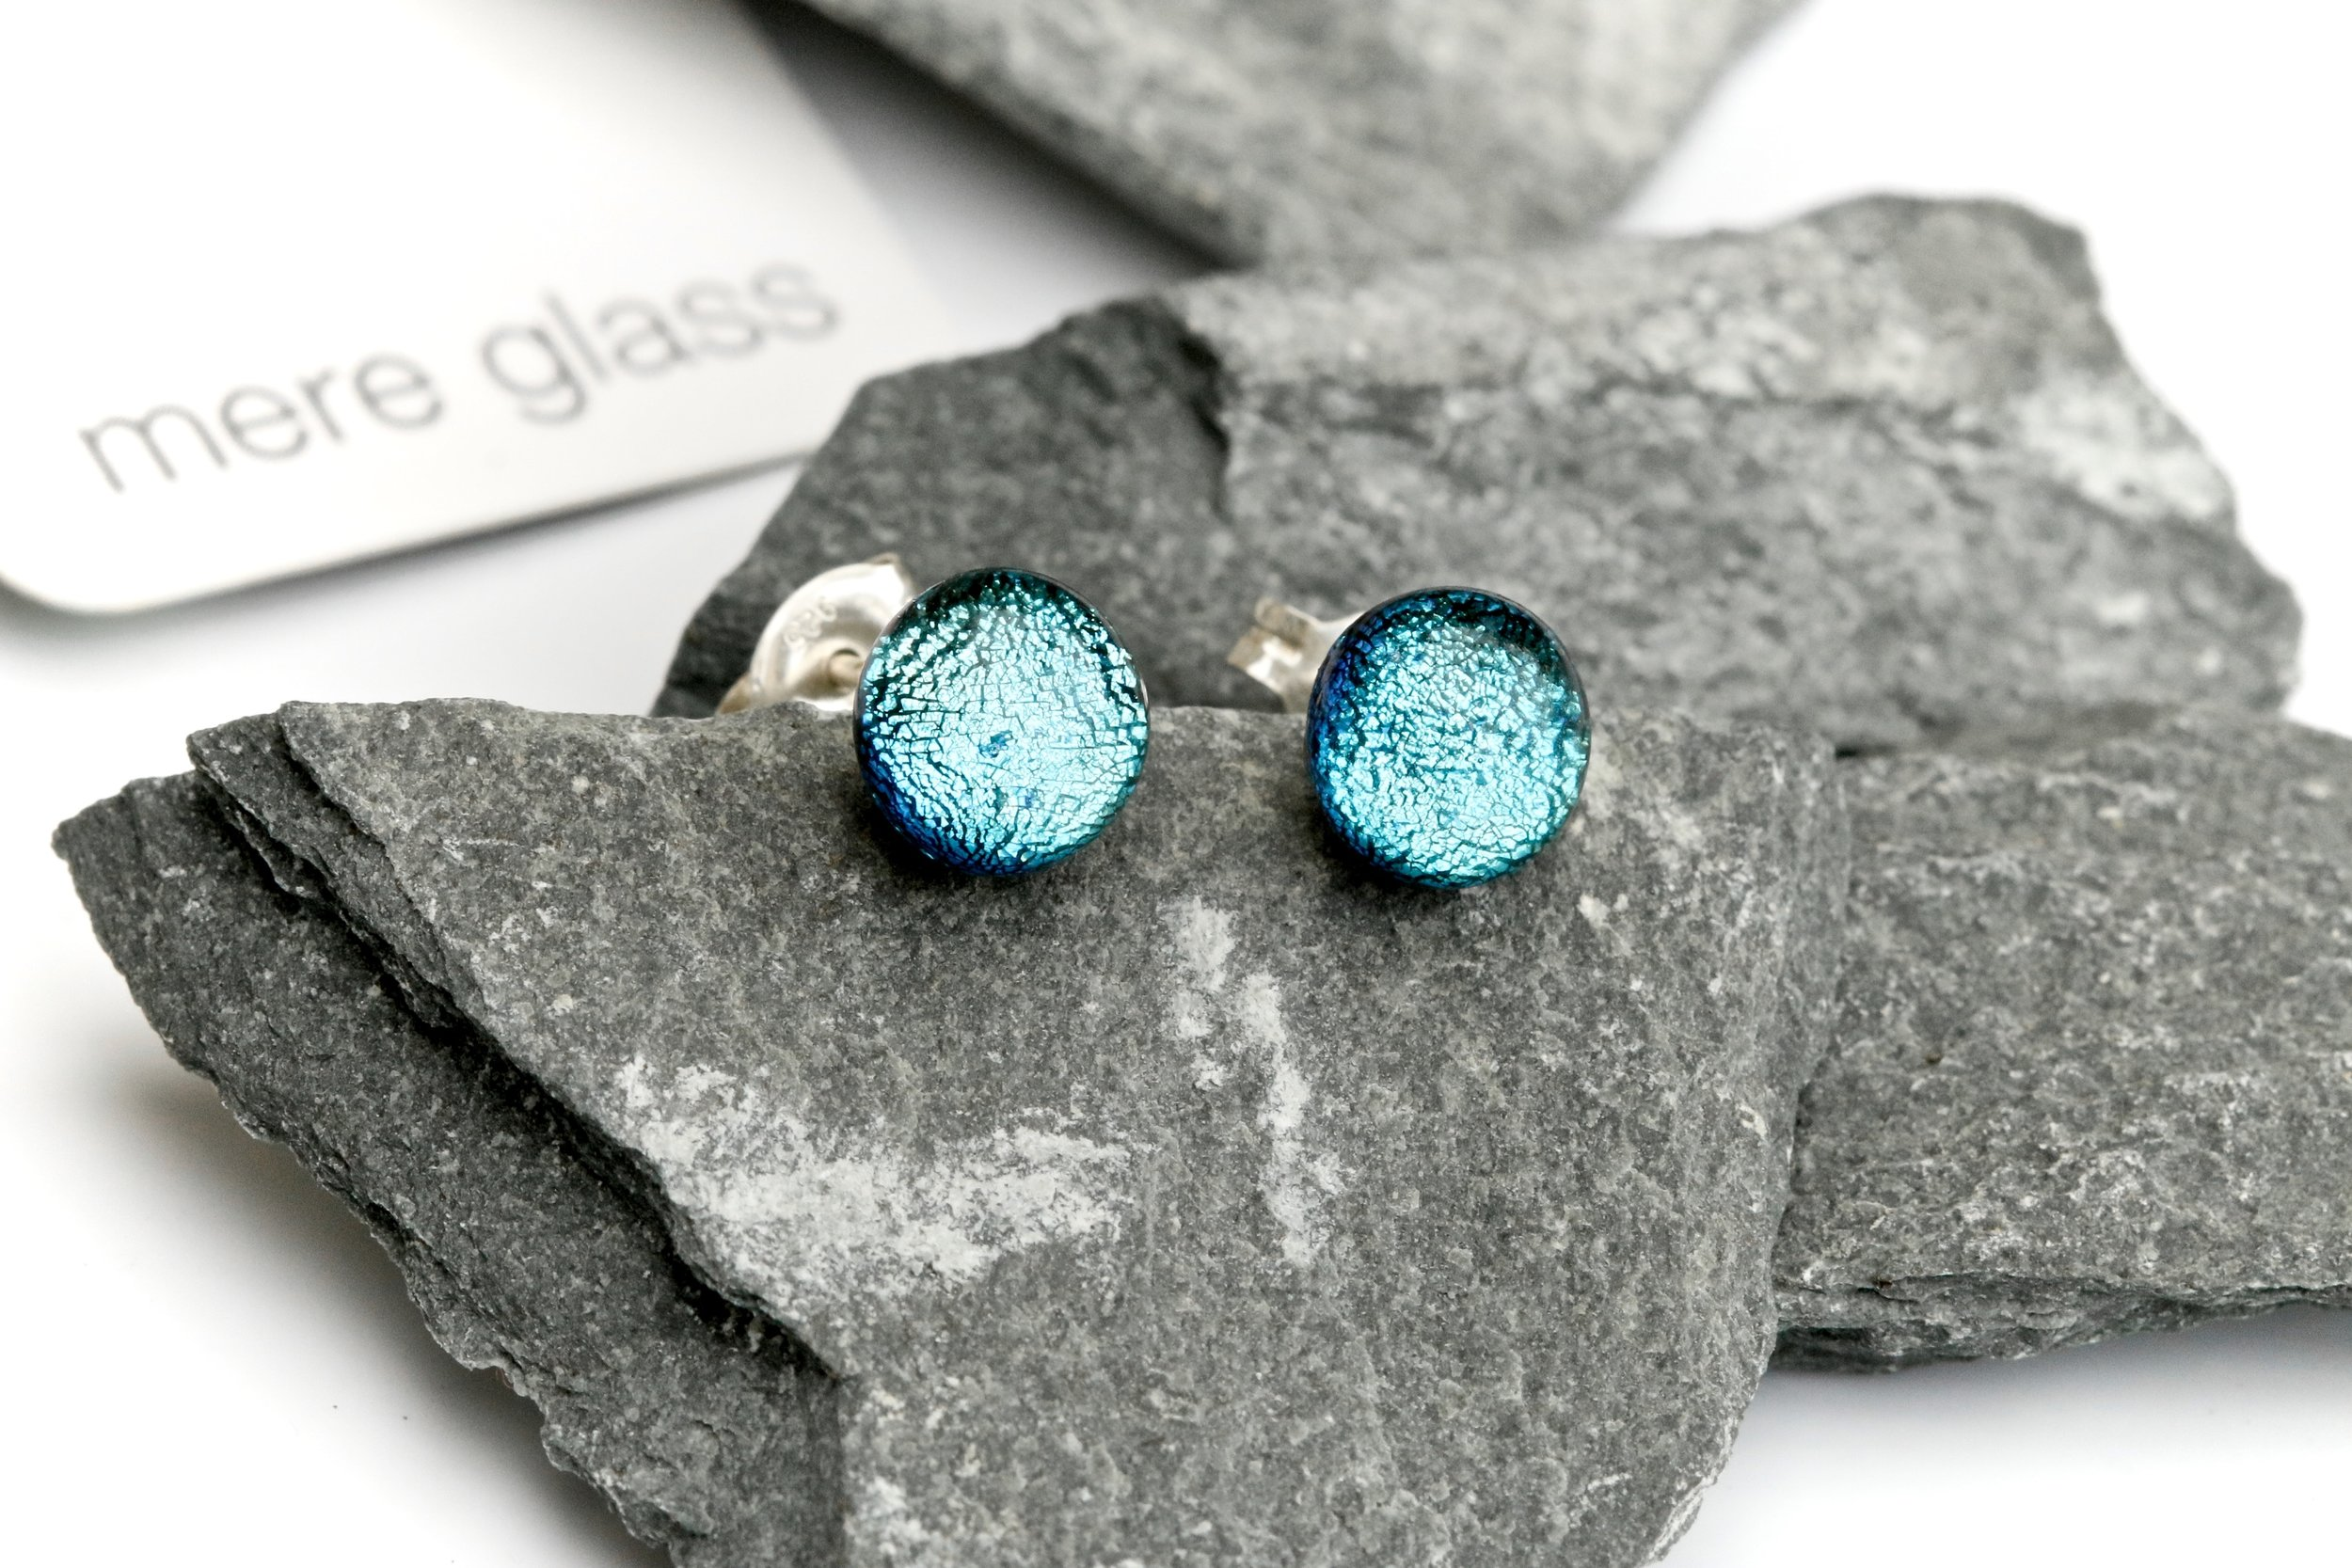 Exquisite Studs - Tiny, Beautiful, Striking